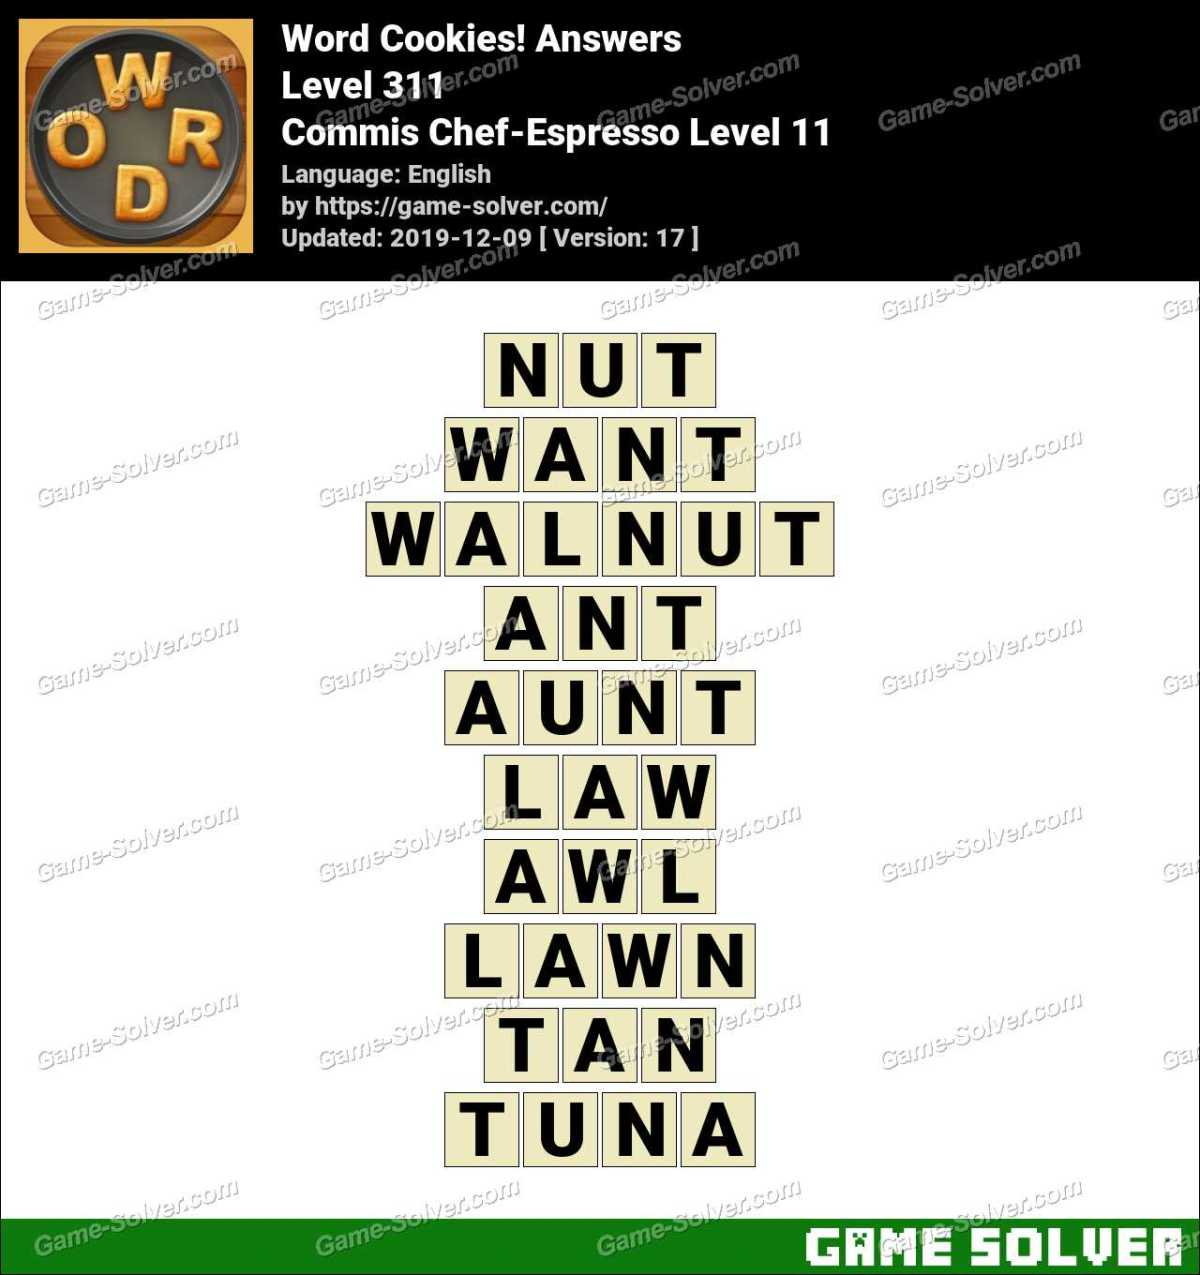 Word Cookies Commis Chef-Espresso Level 11 Answers